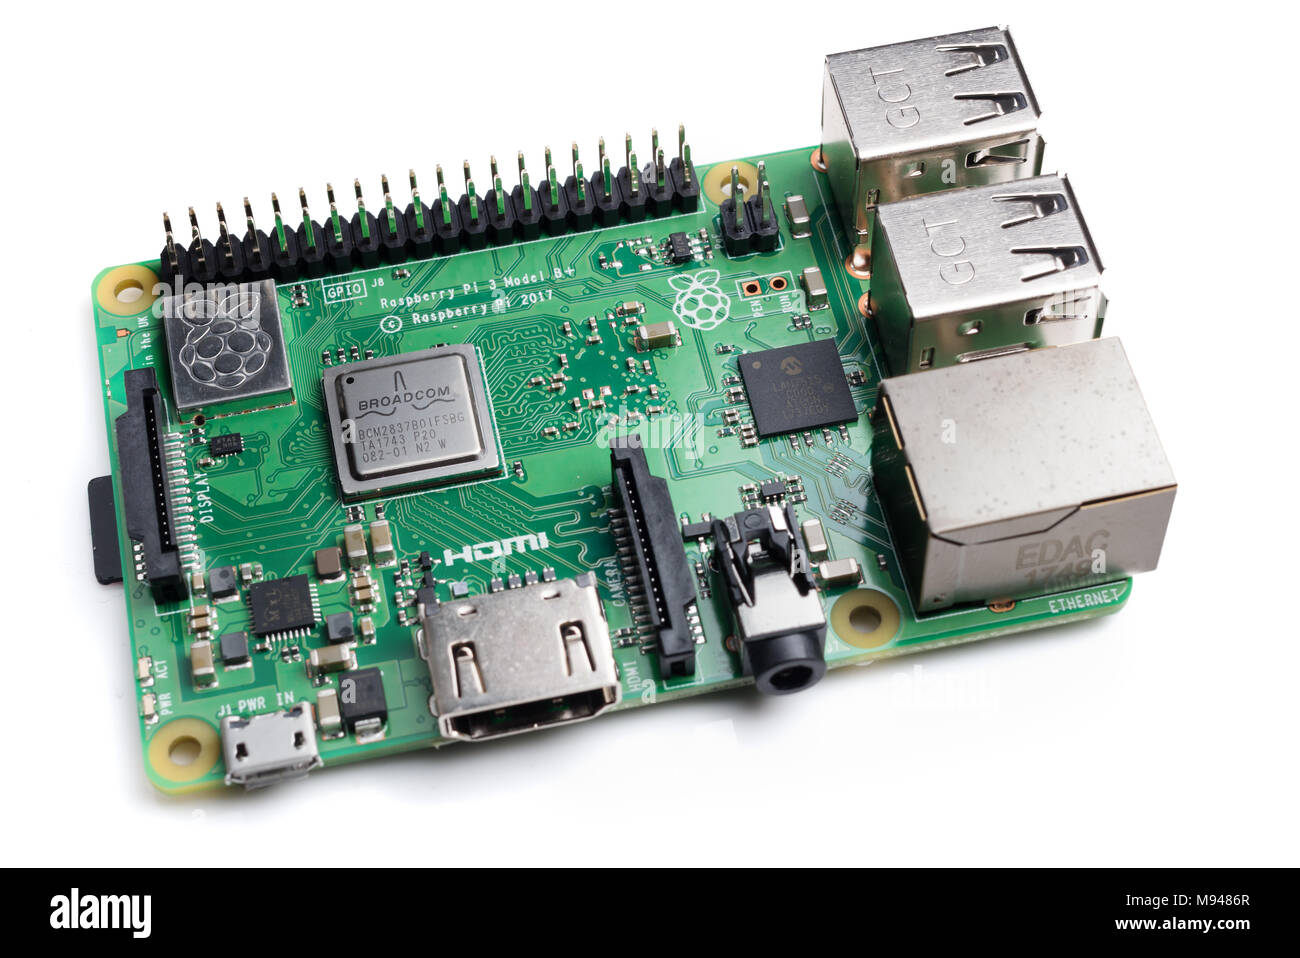 Raspberry Pi Stock Photos & Raspberry Pi Stock Images - Alamy